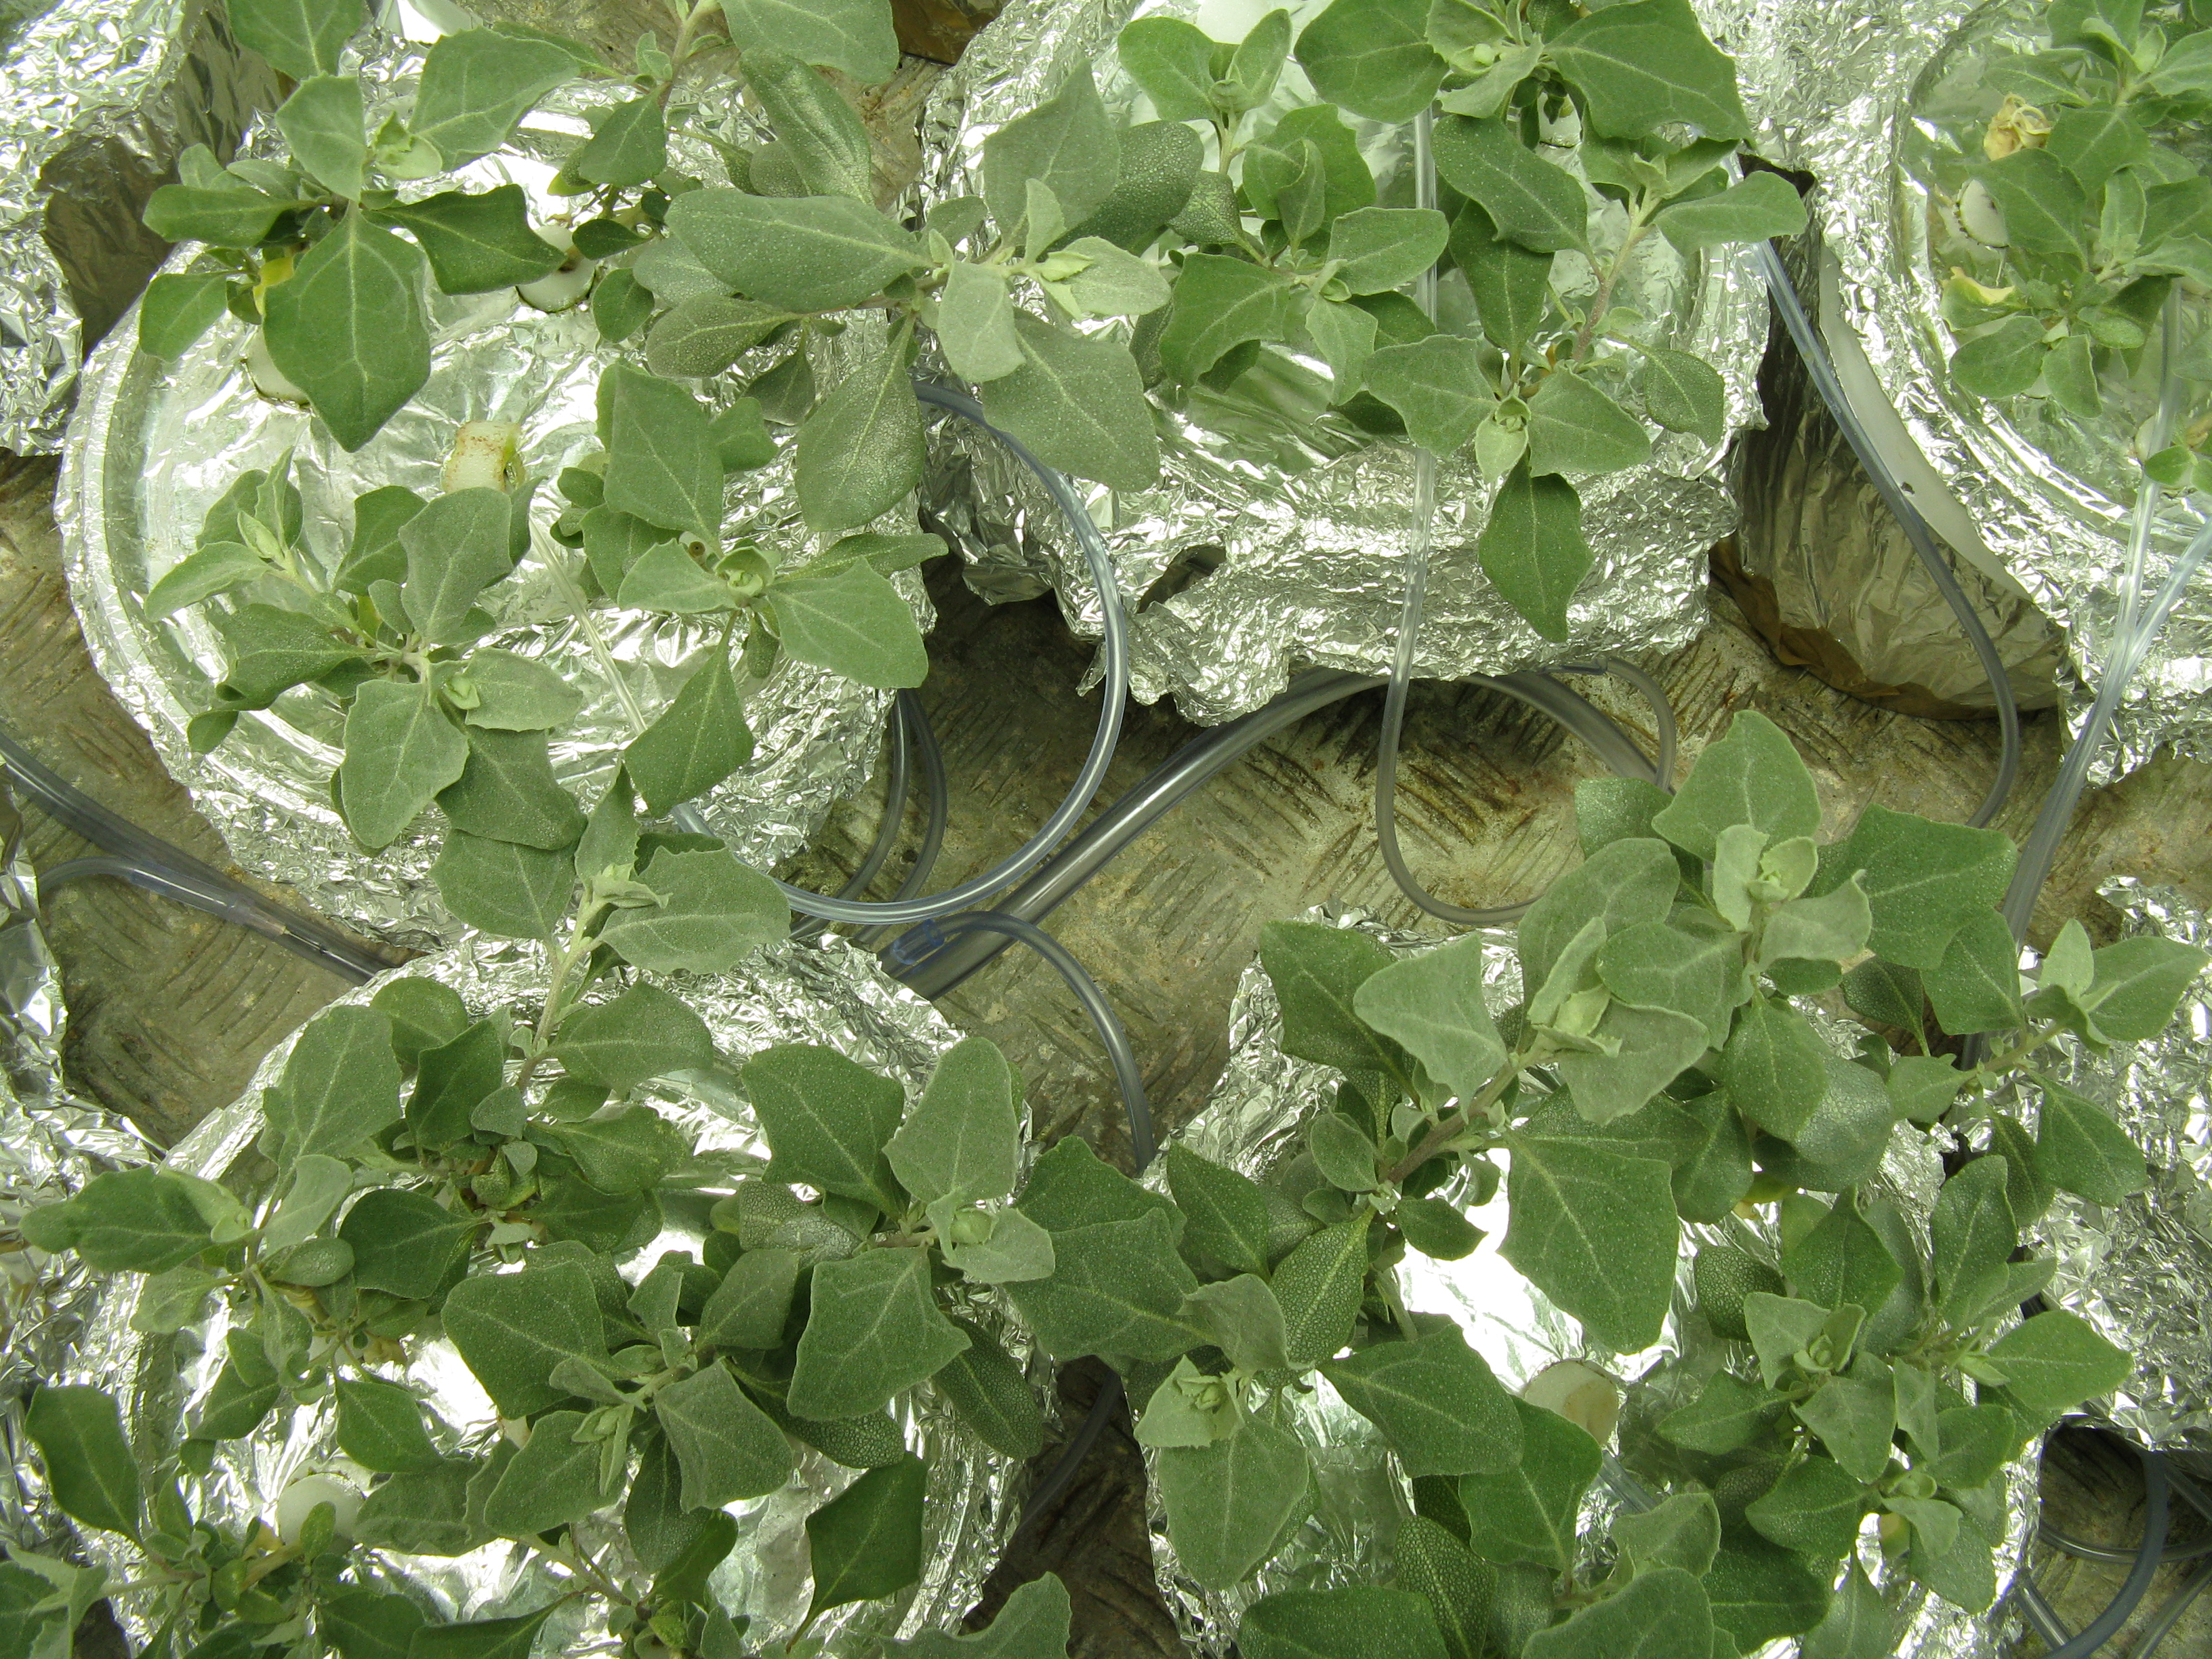 Growing Atriplex in hydroponics